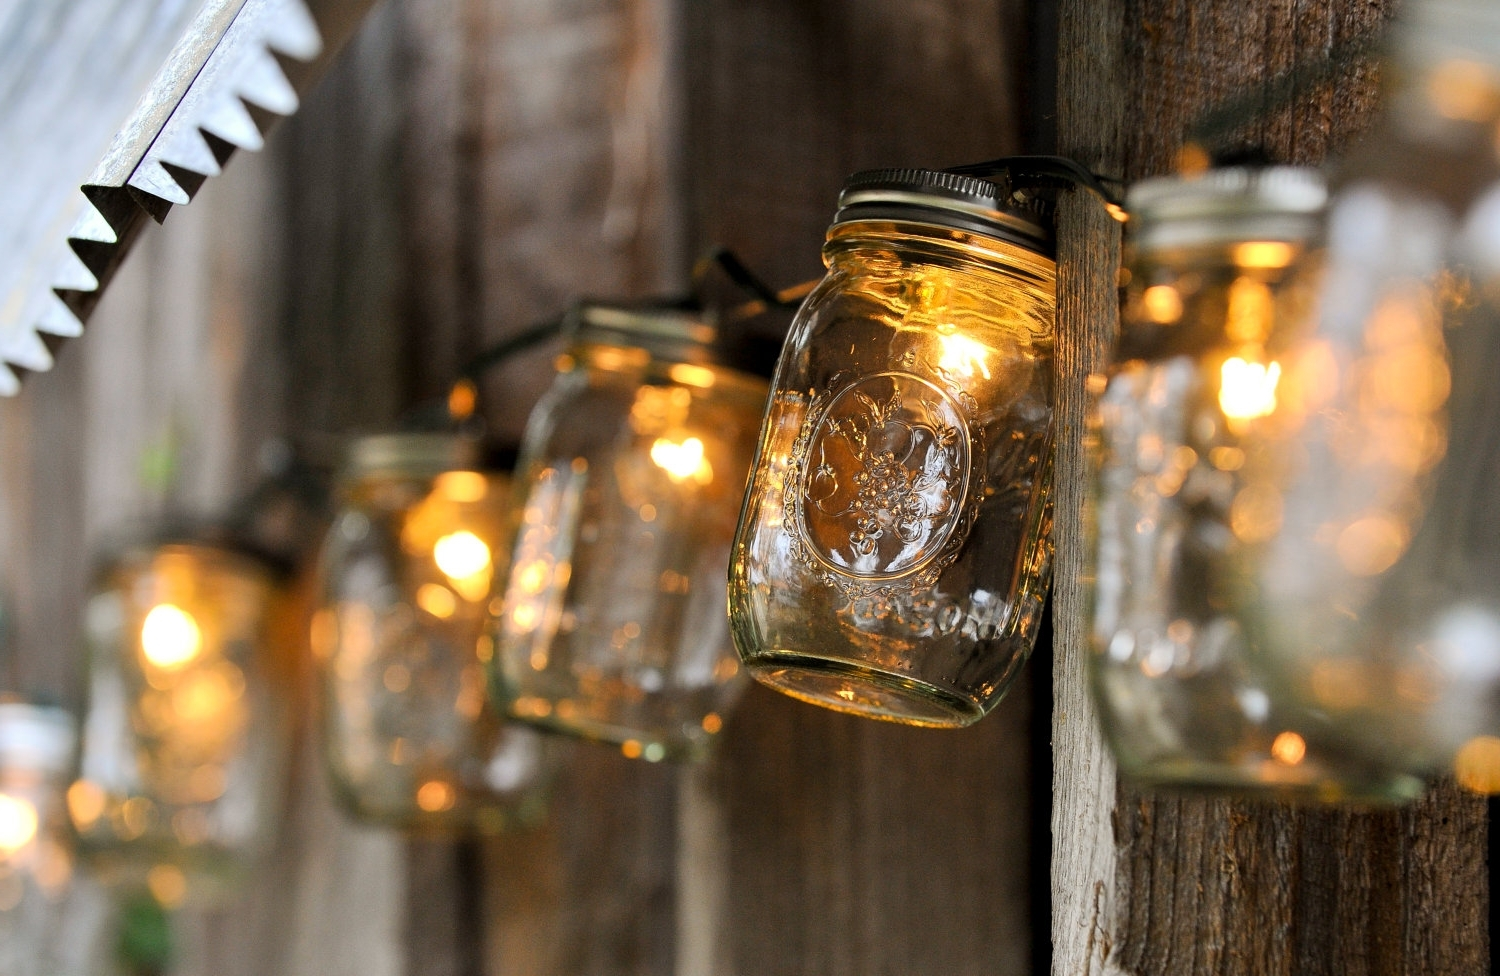 Outdoor Jar Lanterns With Latest 7 Lighting Ideas That Will Make Your Yard Shine (View 14 of 20)